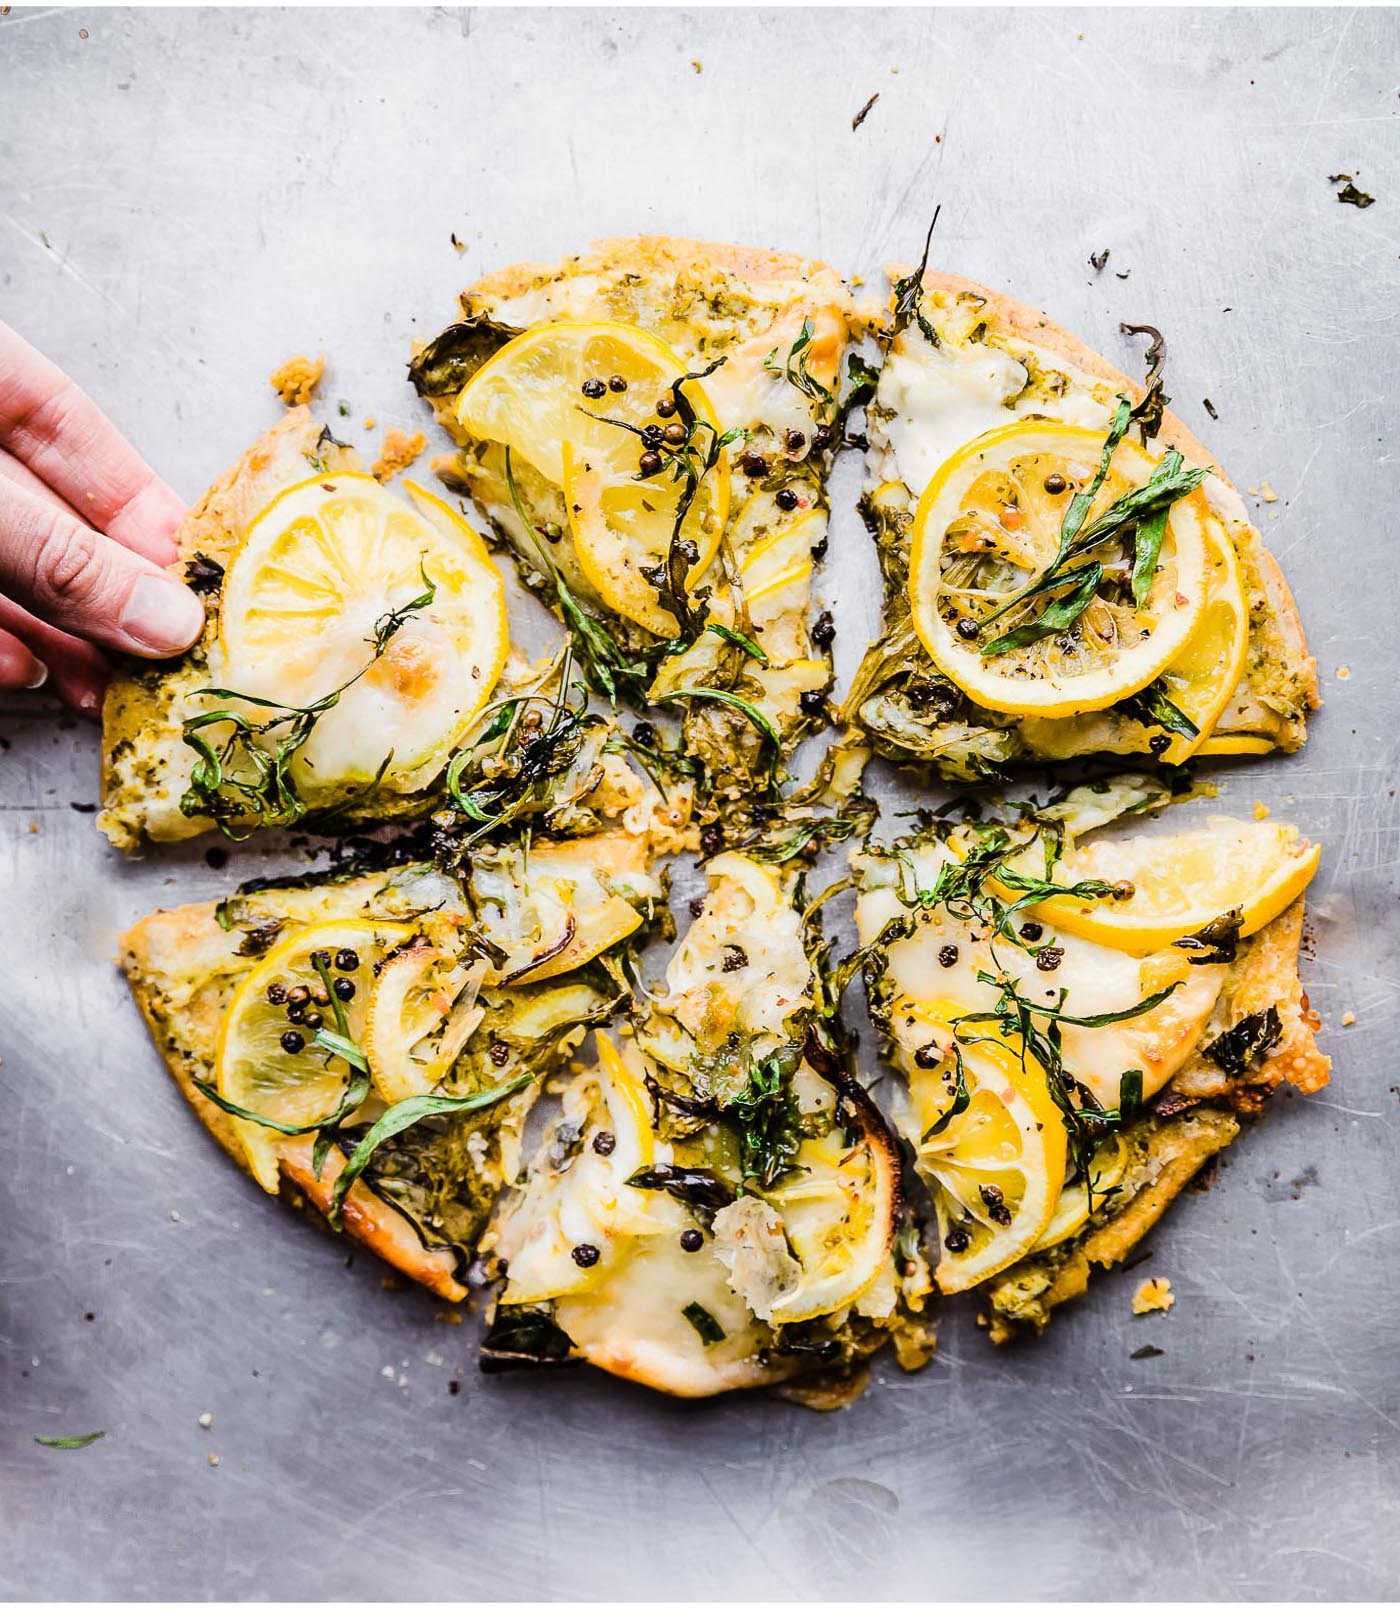 LEMONY HERB SOCCA (FARINATA)! Flatbread or Pizza, you choose your style! Either way, this vegetarian recipe is zippy, zesty, and great as an appetizer, light meatless meal. Grain free with vegan option.#vegetarian #pizza #glutenfree #grainfree #healthy